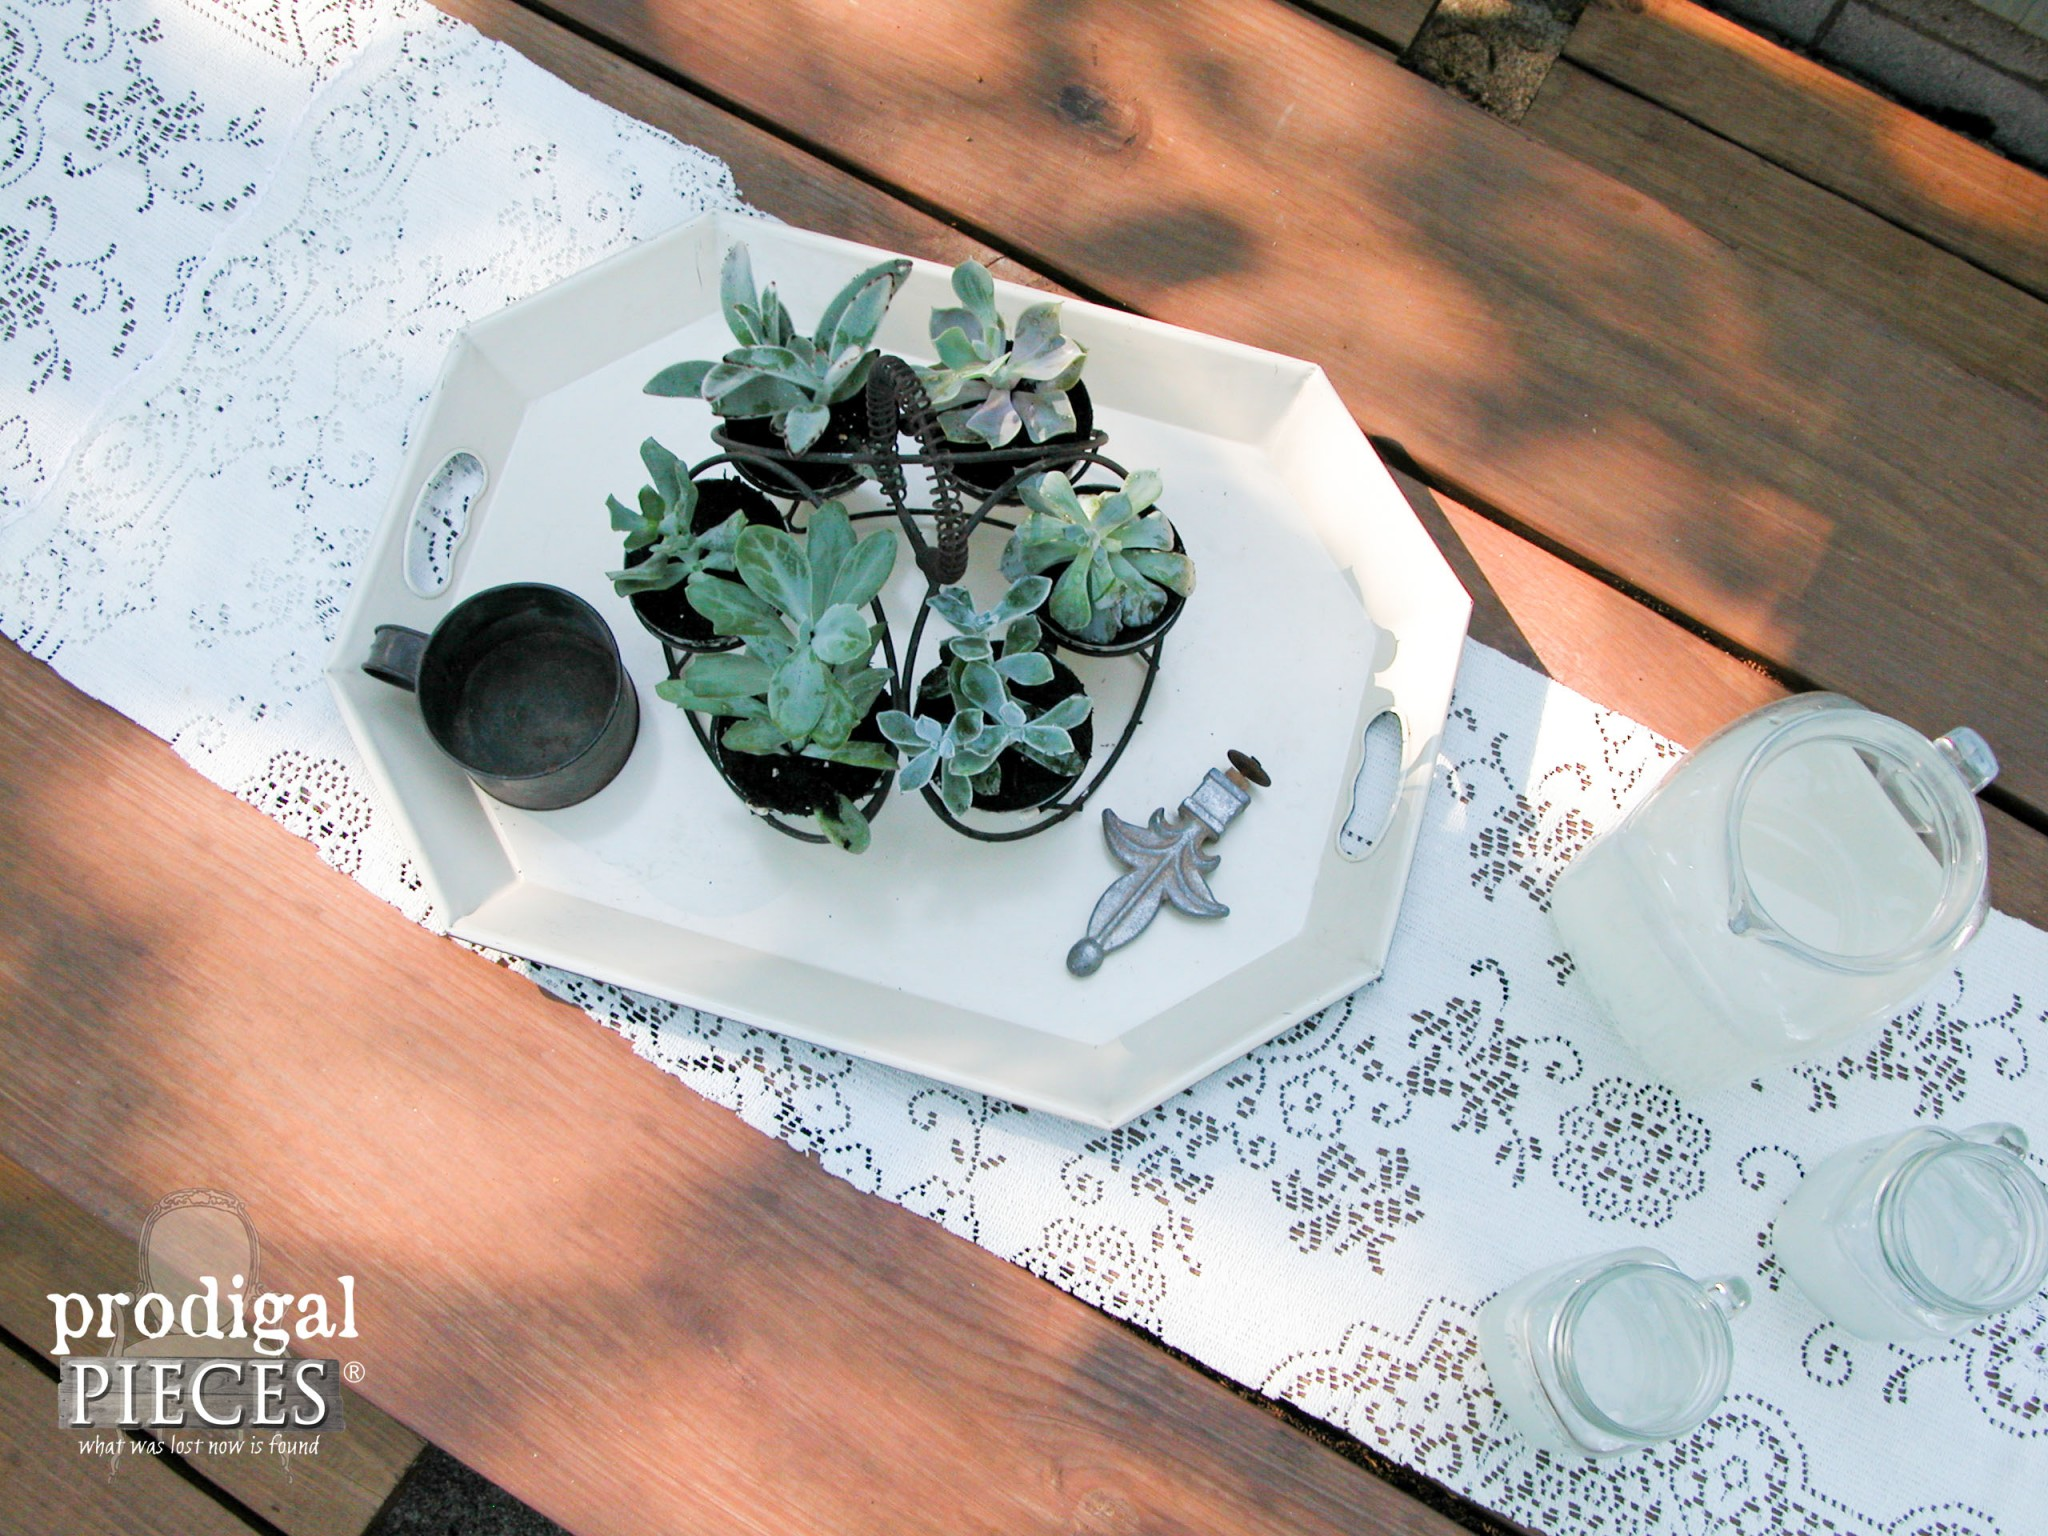 Repurposed Planter with Miniature Succulents | Prodigal Pieces | www.prodigalpieces.com